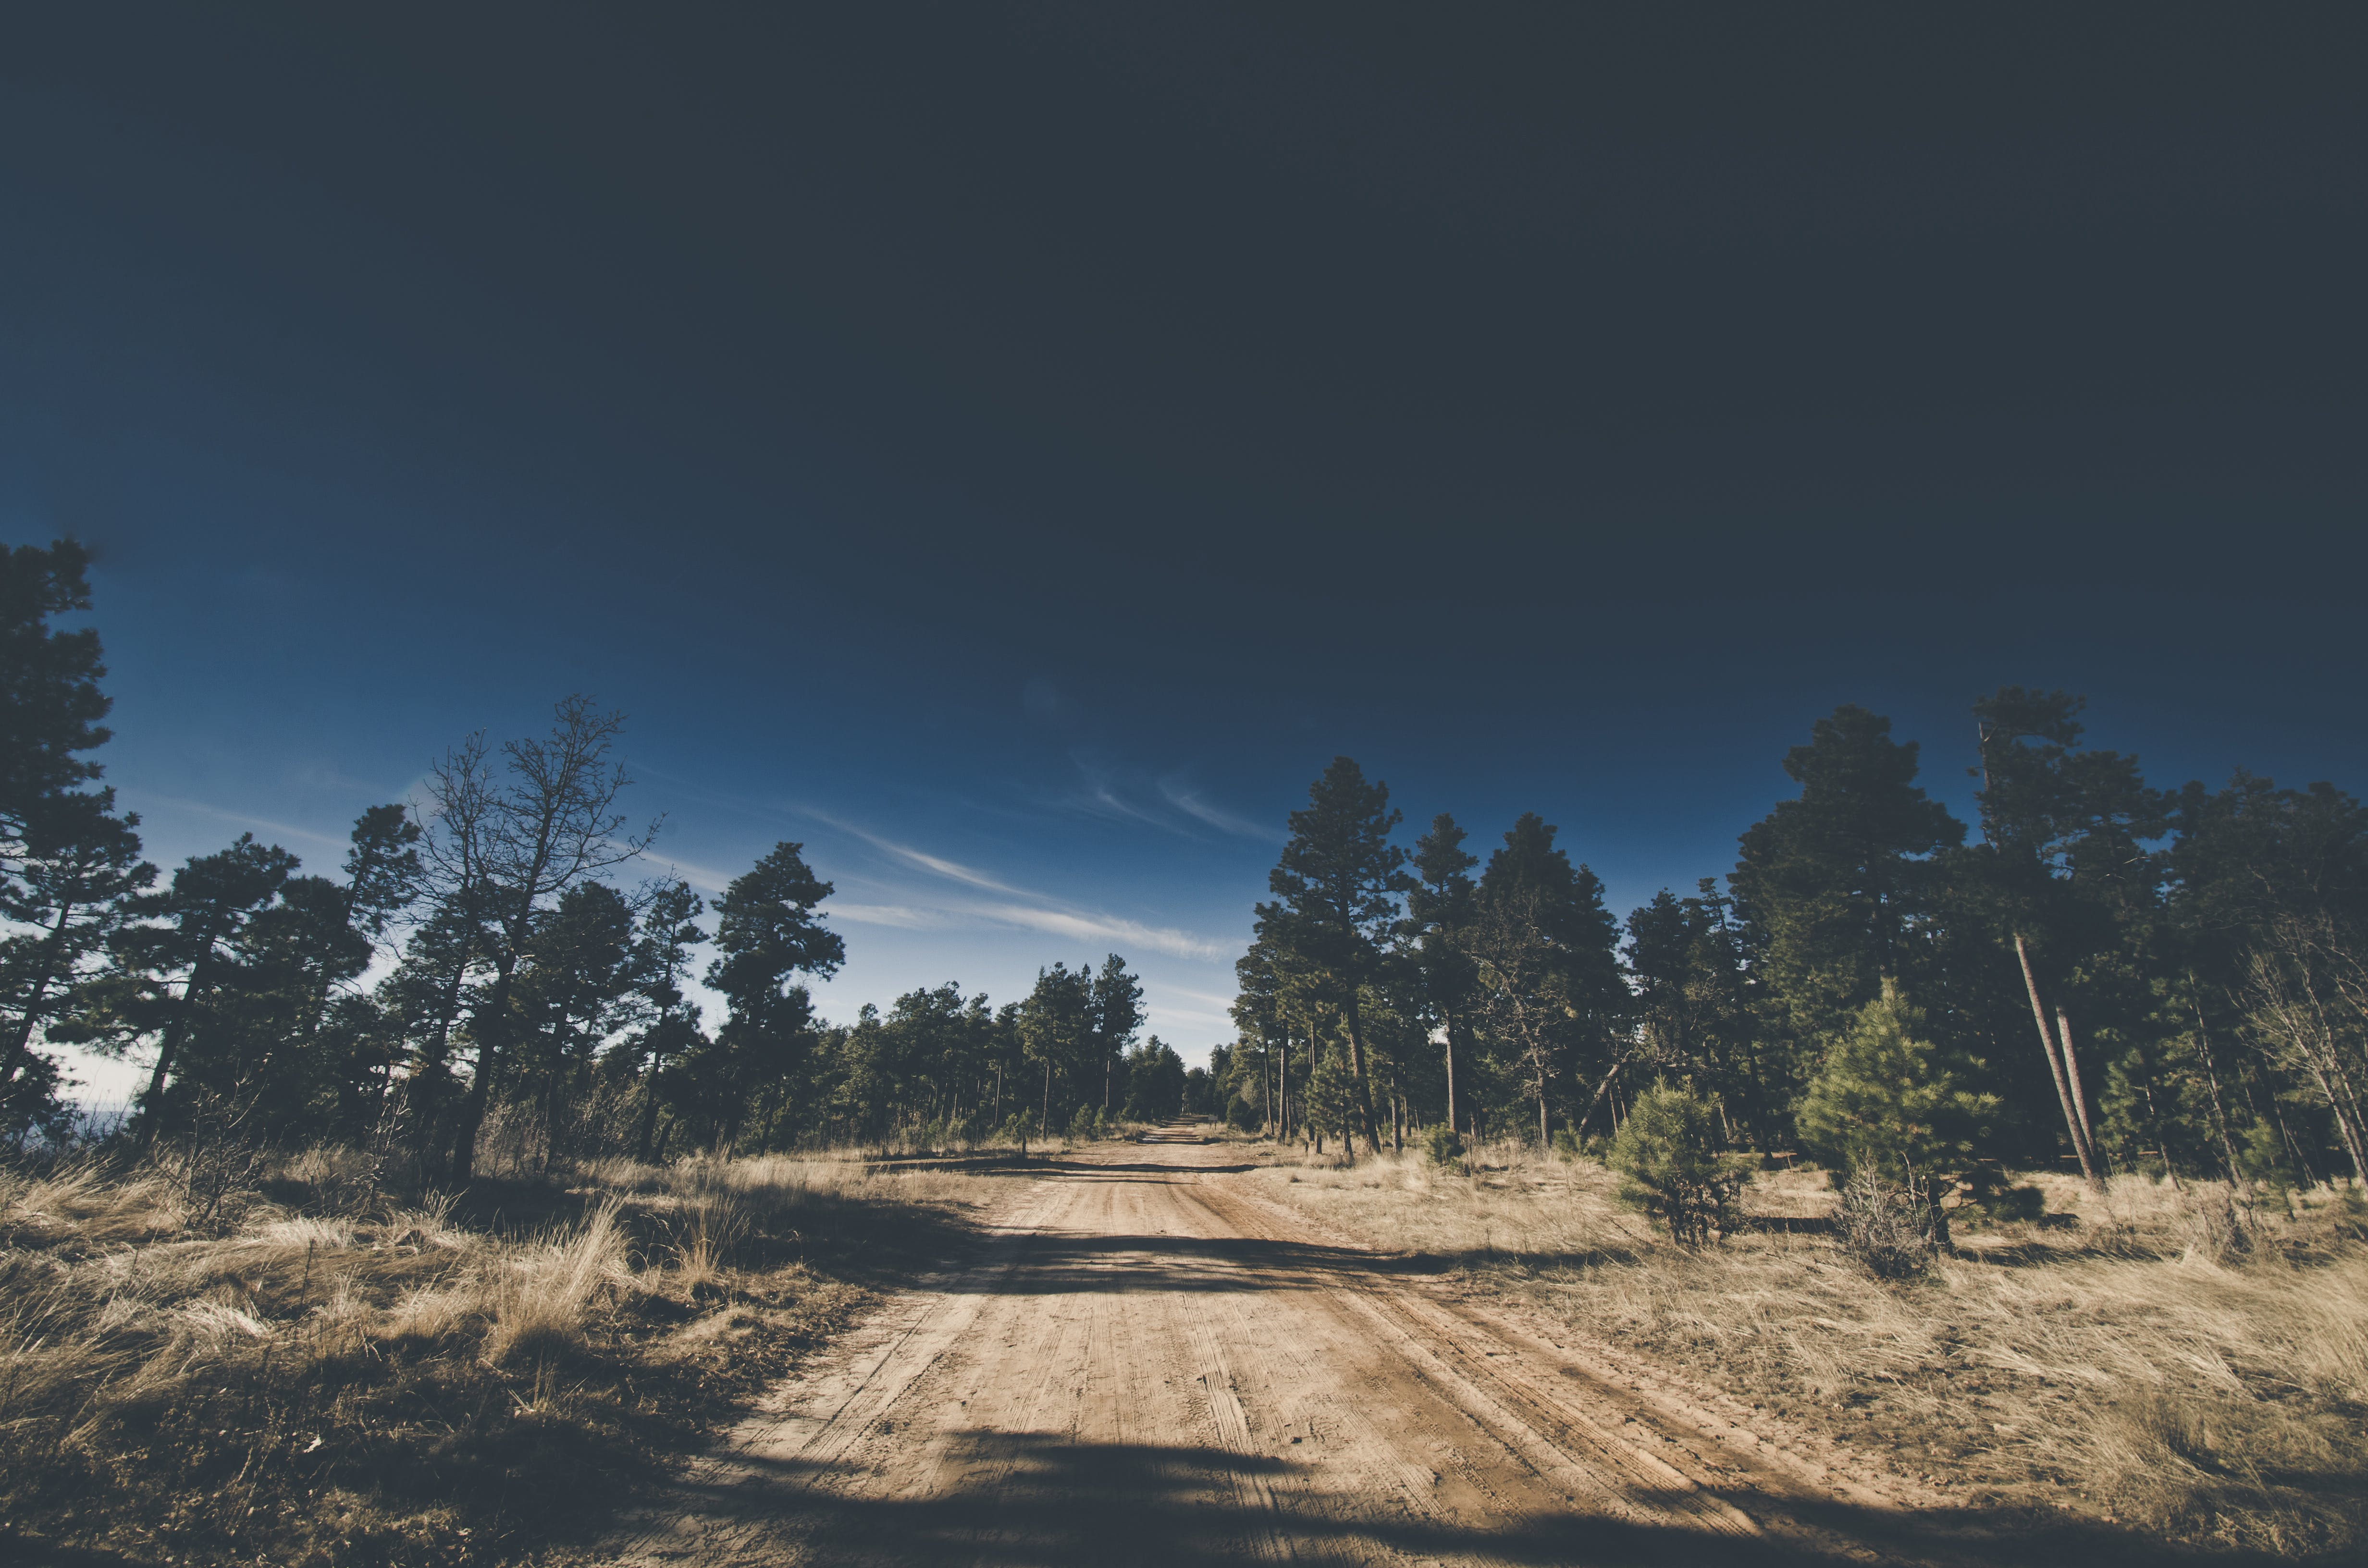 Dirt Road Surrounded by Tress